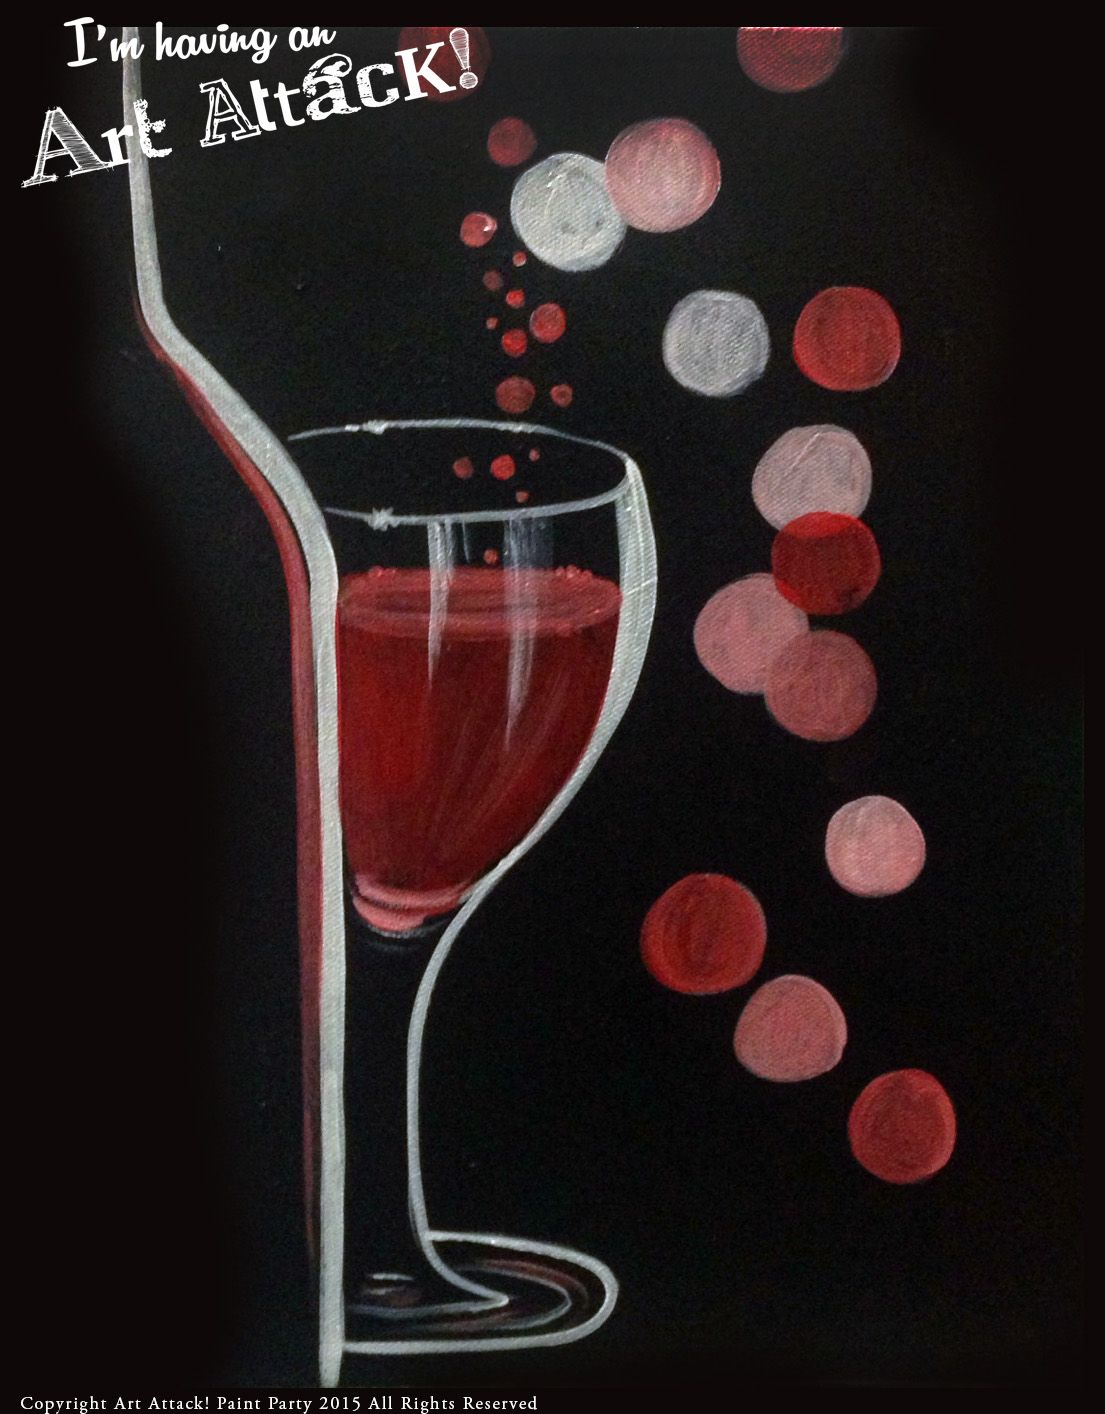 Wine Silhouette Art Attack Paint Party Www Artattackpaintparty Com Wine Paint Party Paint Party Paint And Drink